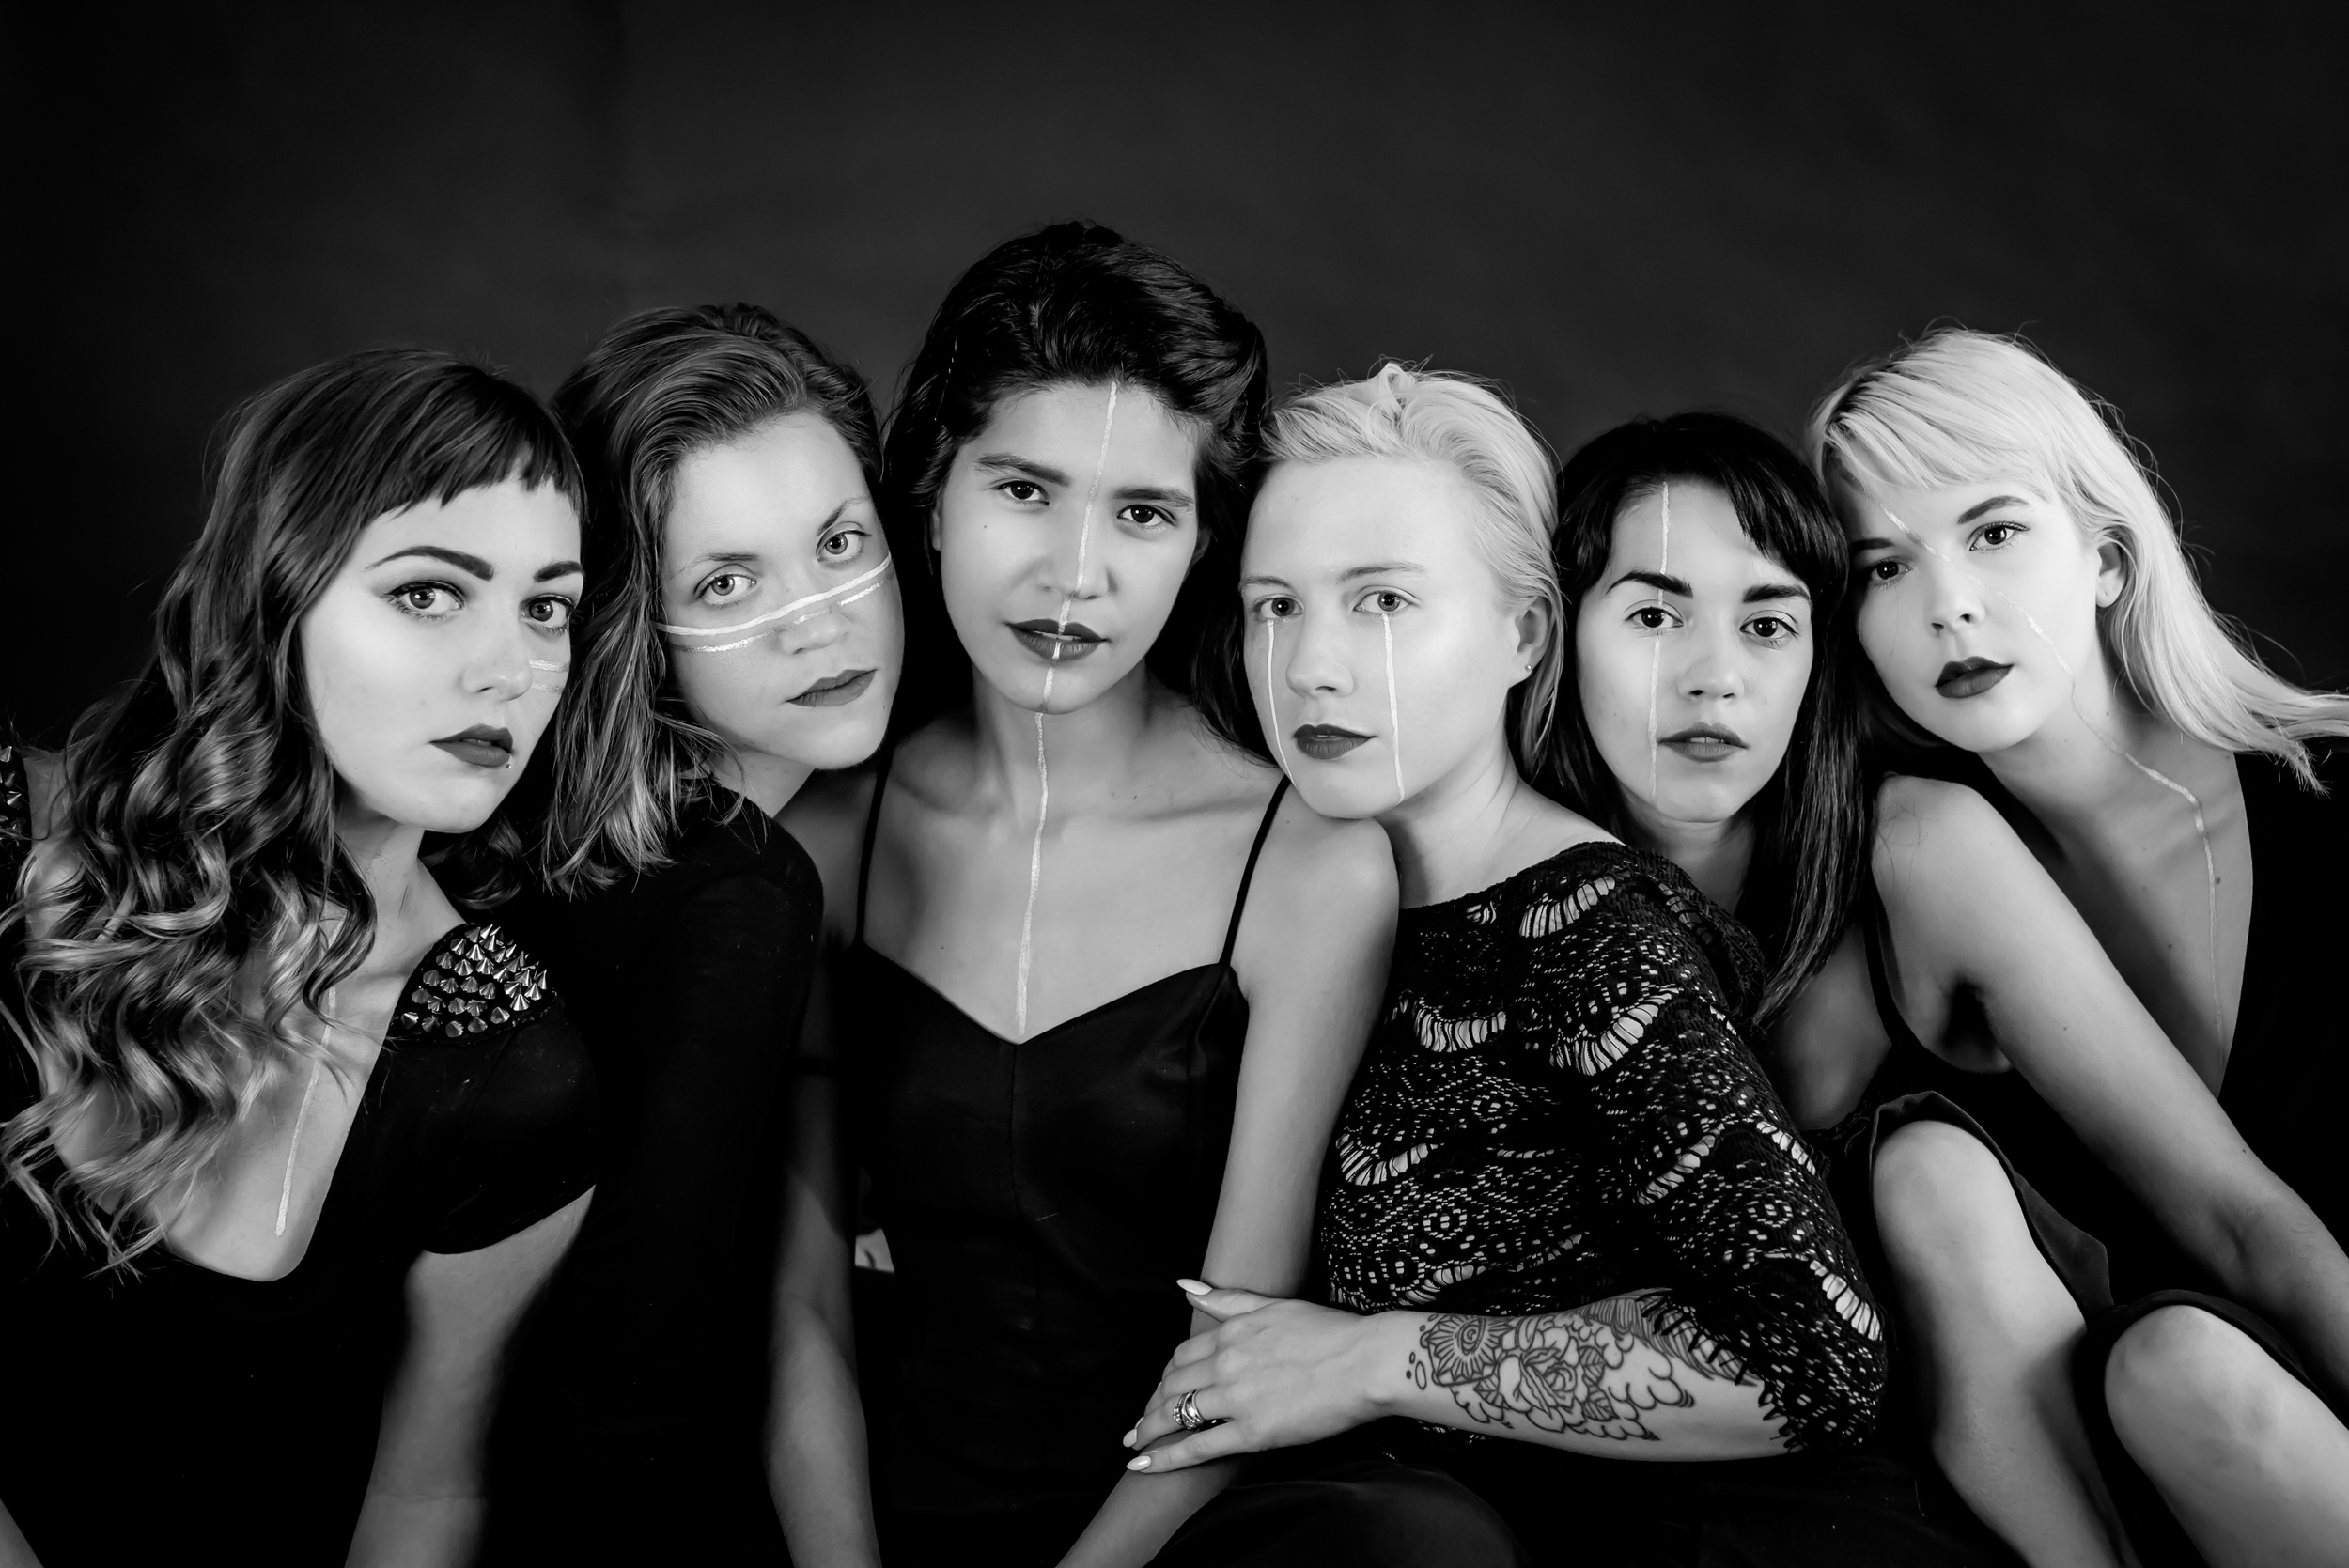 EeeEeeeE! I was so pumped to photograph some INCREDIBLE WOMEN!! These talented young artists and feminists get together and call themselves the Gilded Rag. I LOVED getting artsy with them at the studio to create promos for their fashion show at the Rialto!